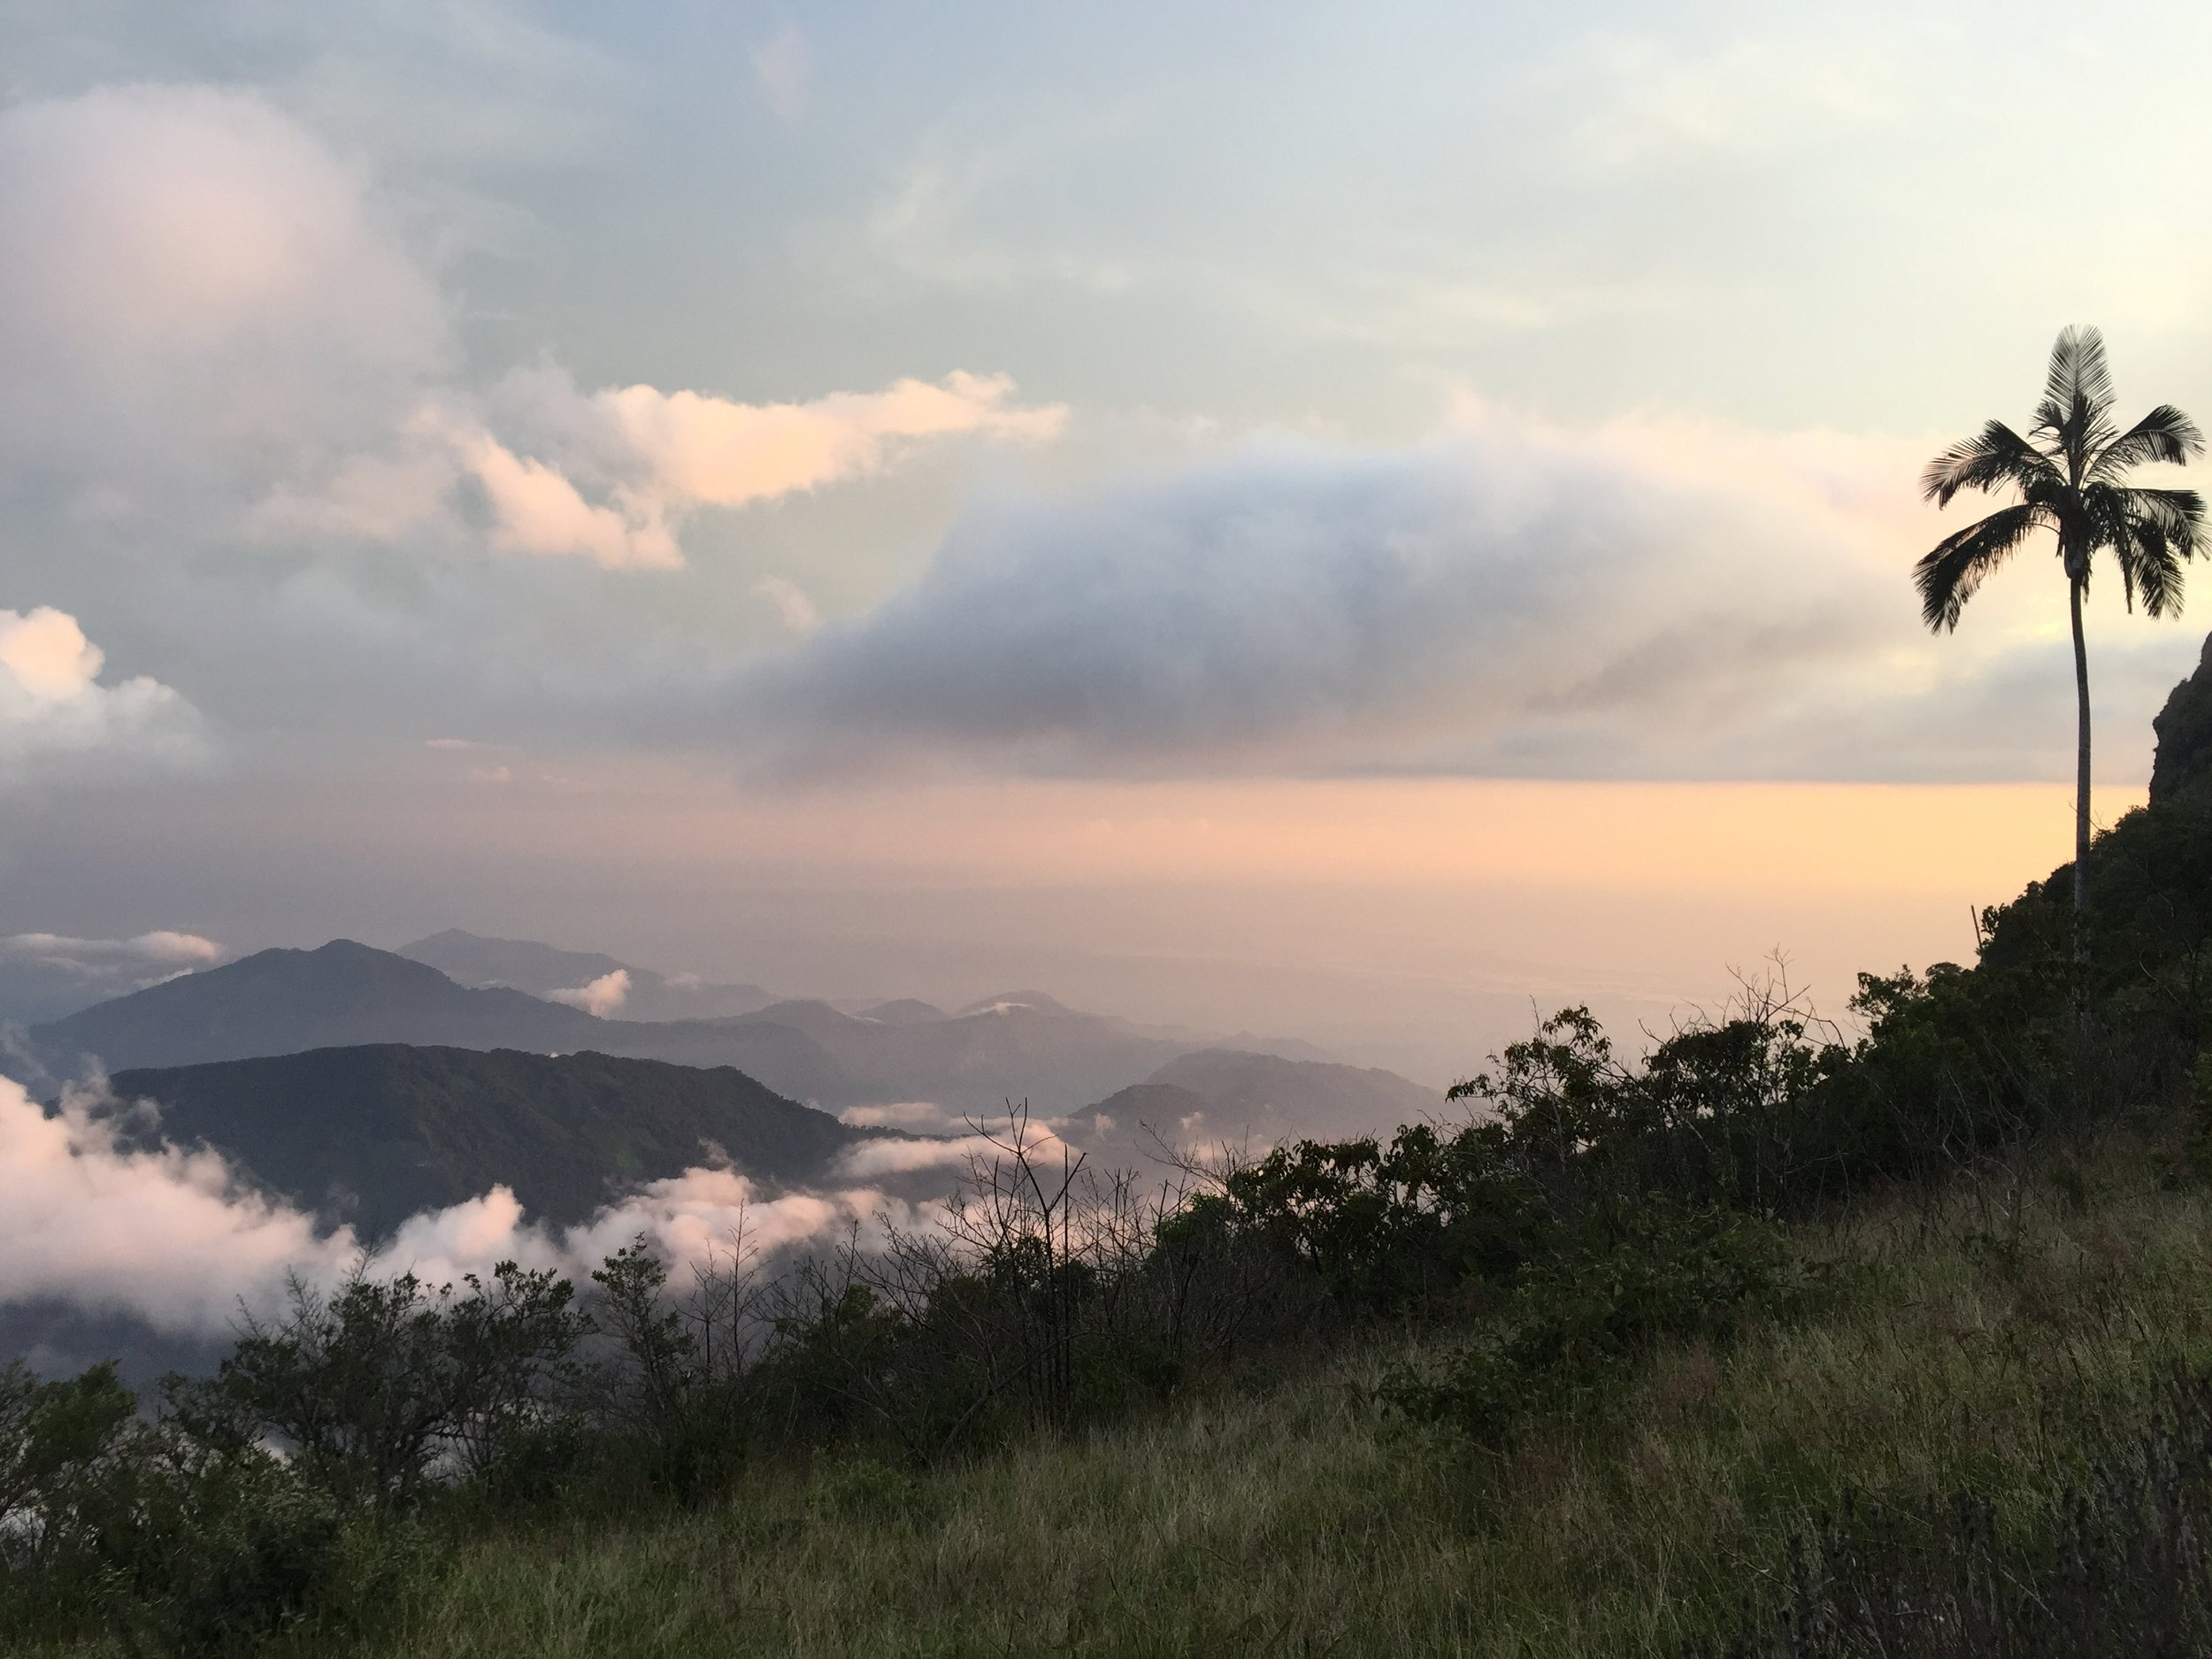 CERRO KENNEDY, COLOMBIA – JULY 28TH, 2017: The view from the summit of Cerro Kennedy, 7000 feet above the town of Minca. Clouds stream down from the lower peaks to the sea, less than 41 miles away.